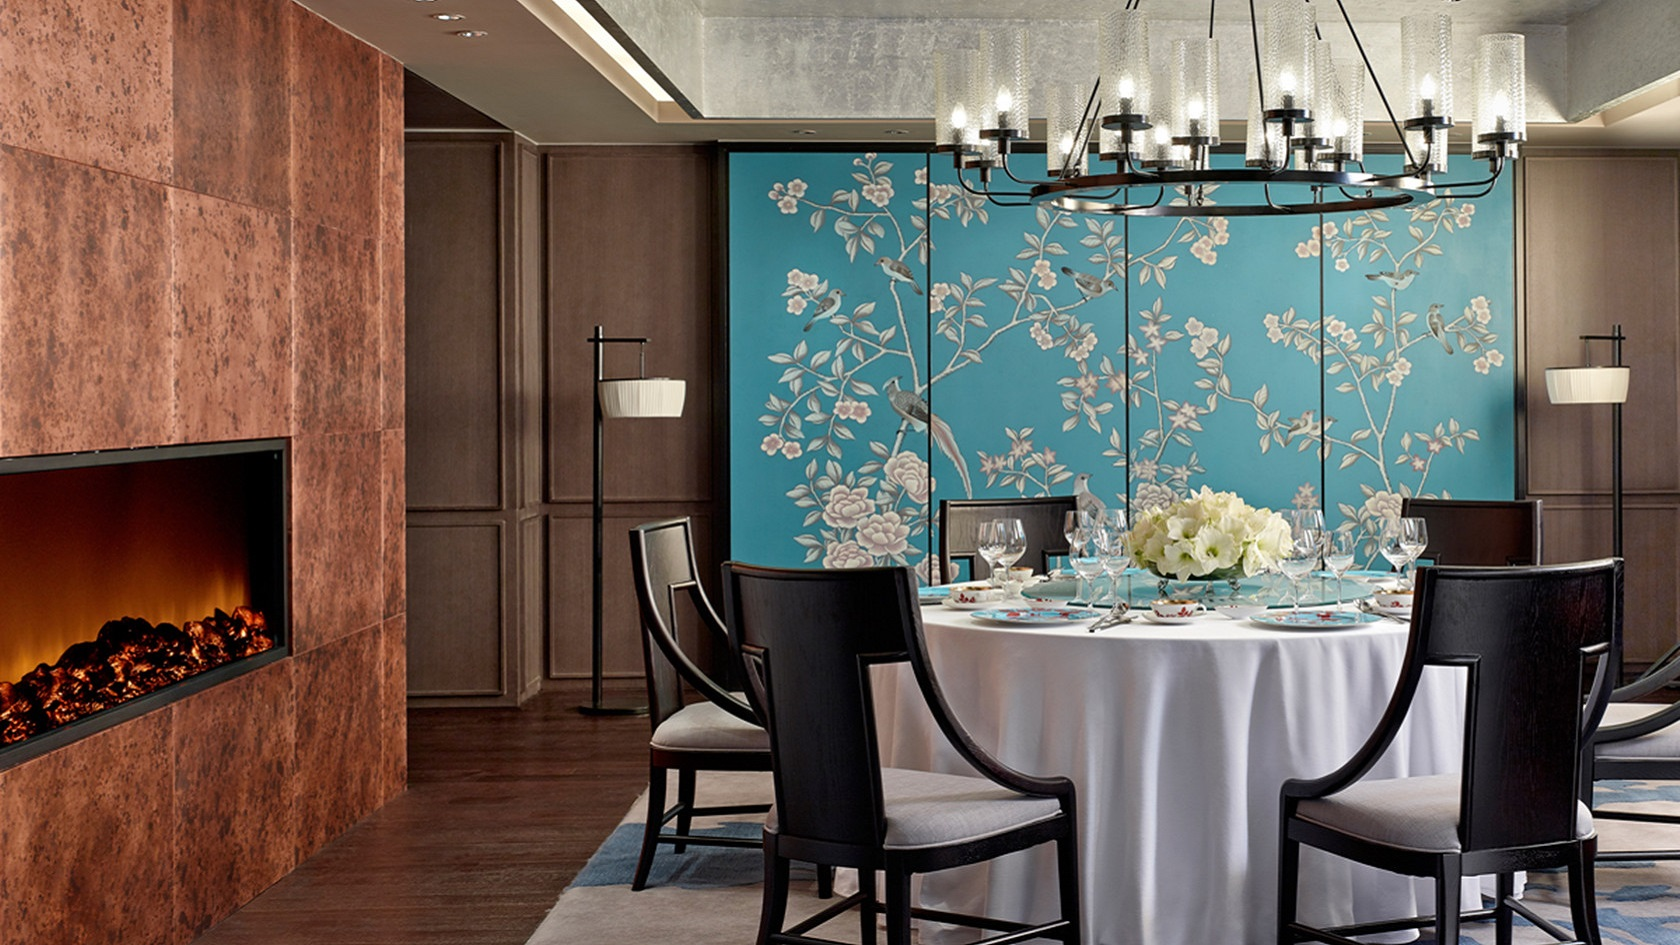 Dining Room Design Ideas And Colour Combos To Get Inspired By (8) dining room design Colour Combination Ideas For Your Dining Room Design Dining Room Design Ideas And Colour Combos To Get Inspired By 8